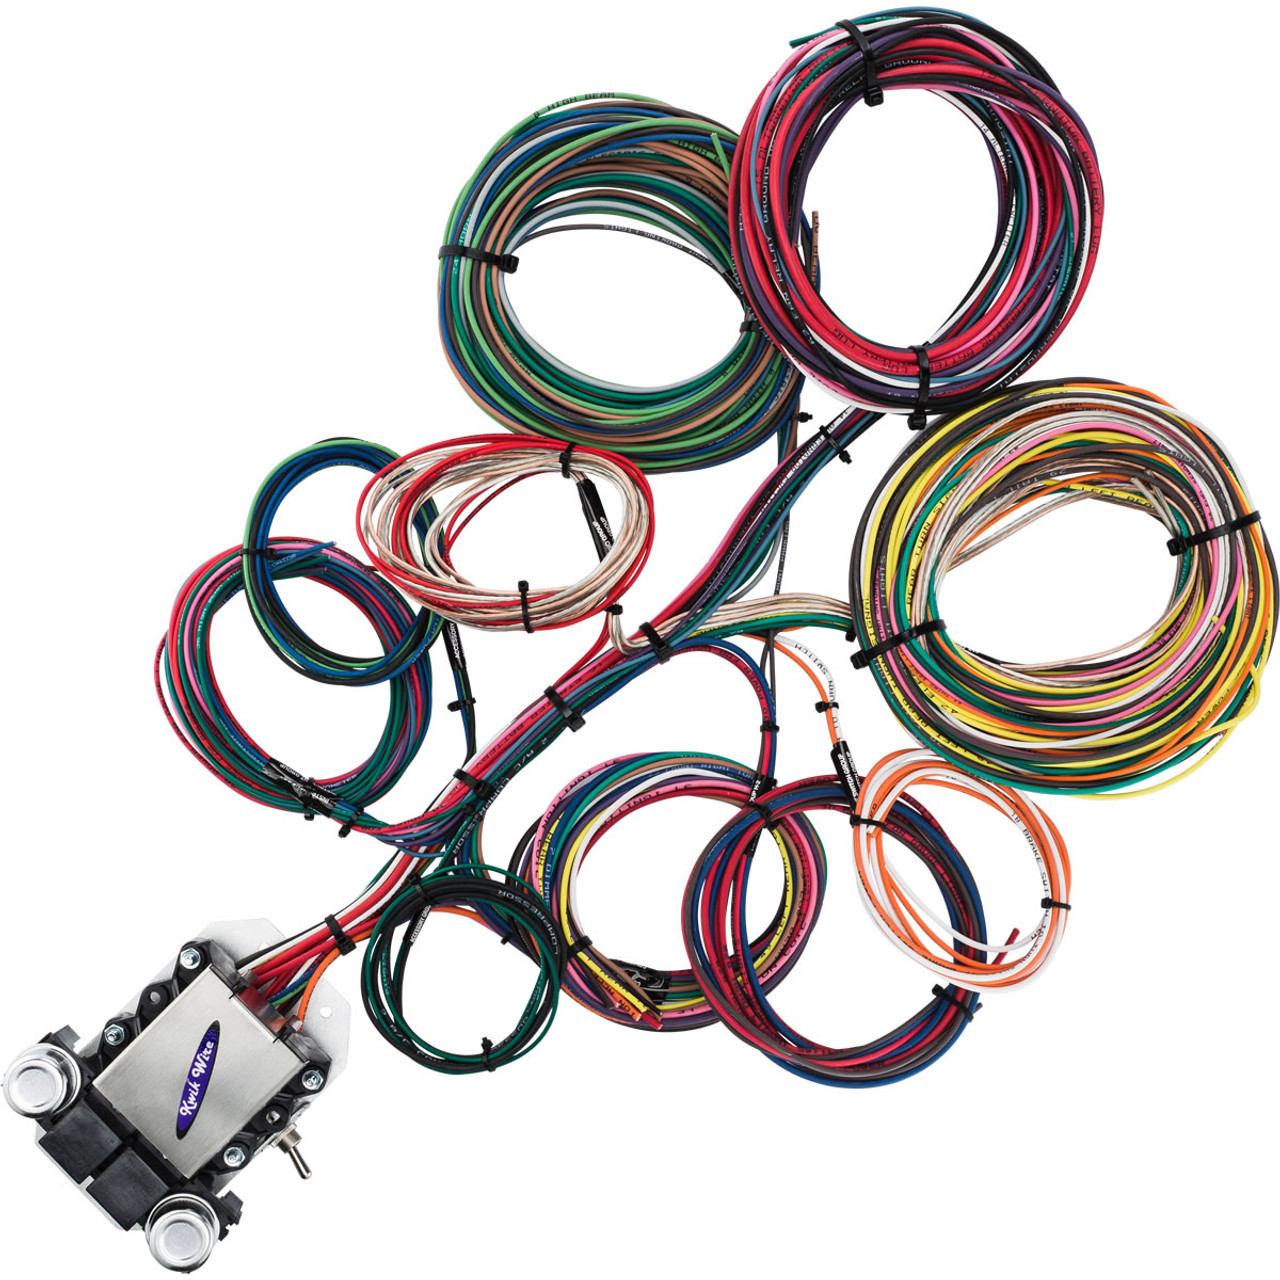 hight resolution of 14 circuit ford wire harness kwikwire com electrify your ride electrical wire harness design software electrical wire harness